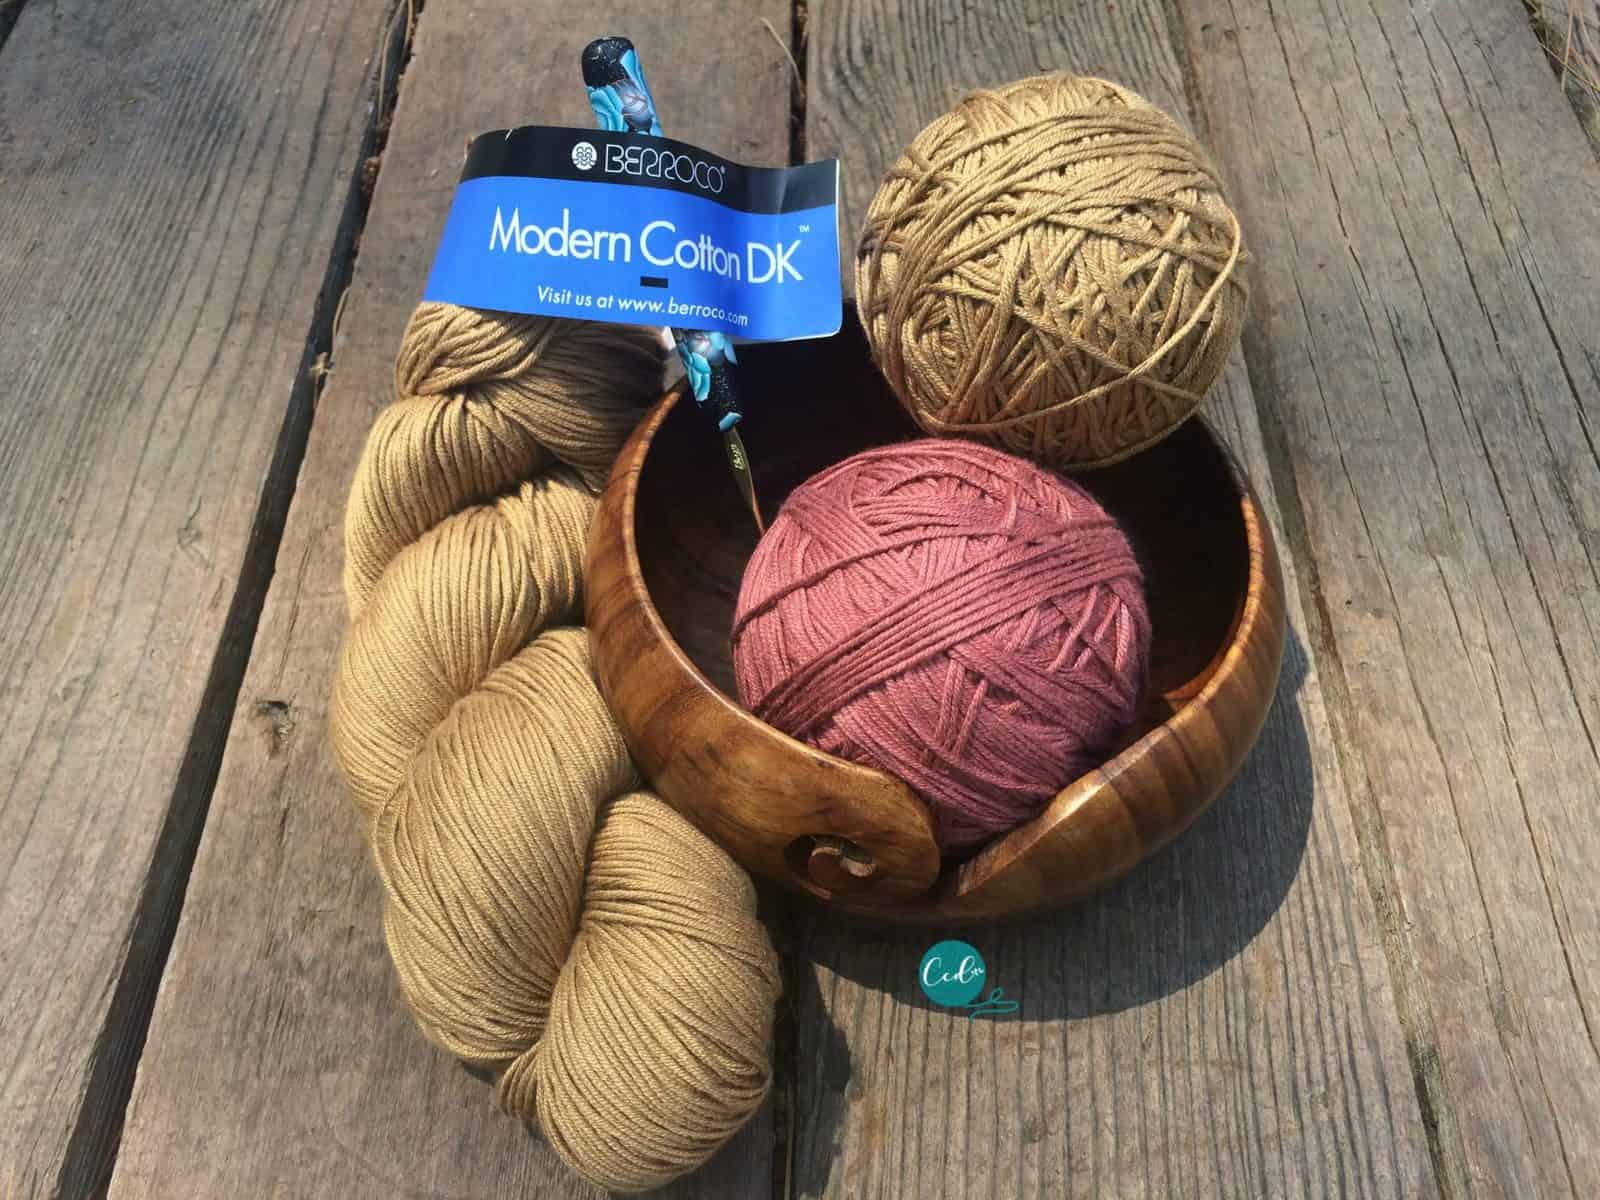 Two balls of hand rolled yarn from one hank of yarn.